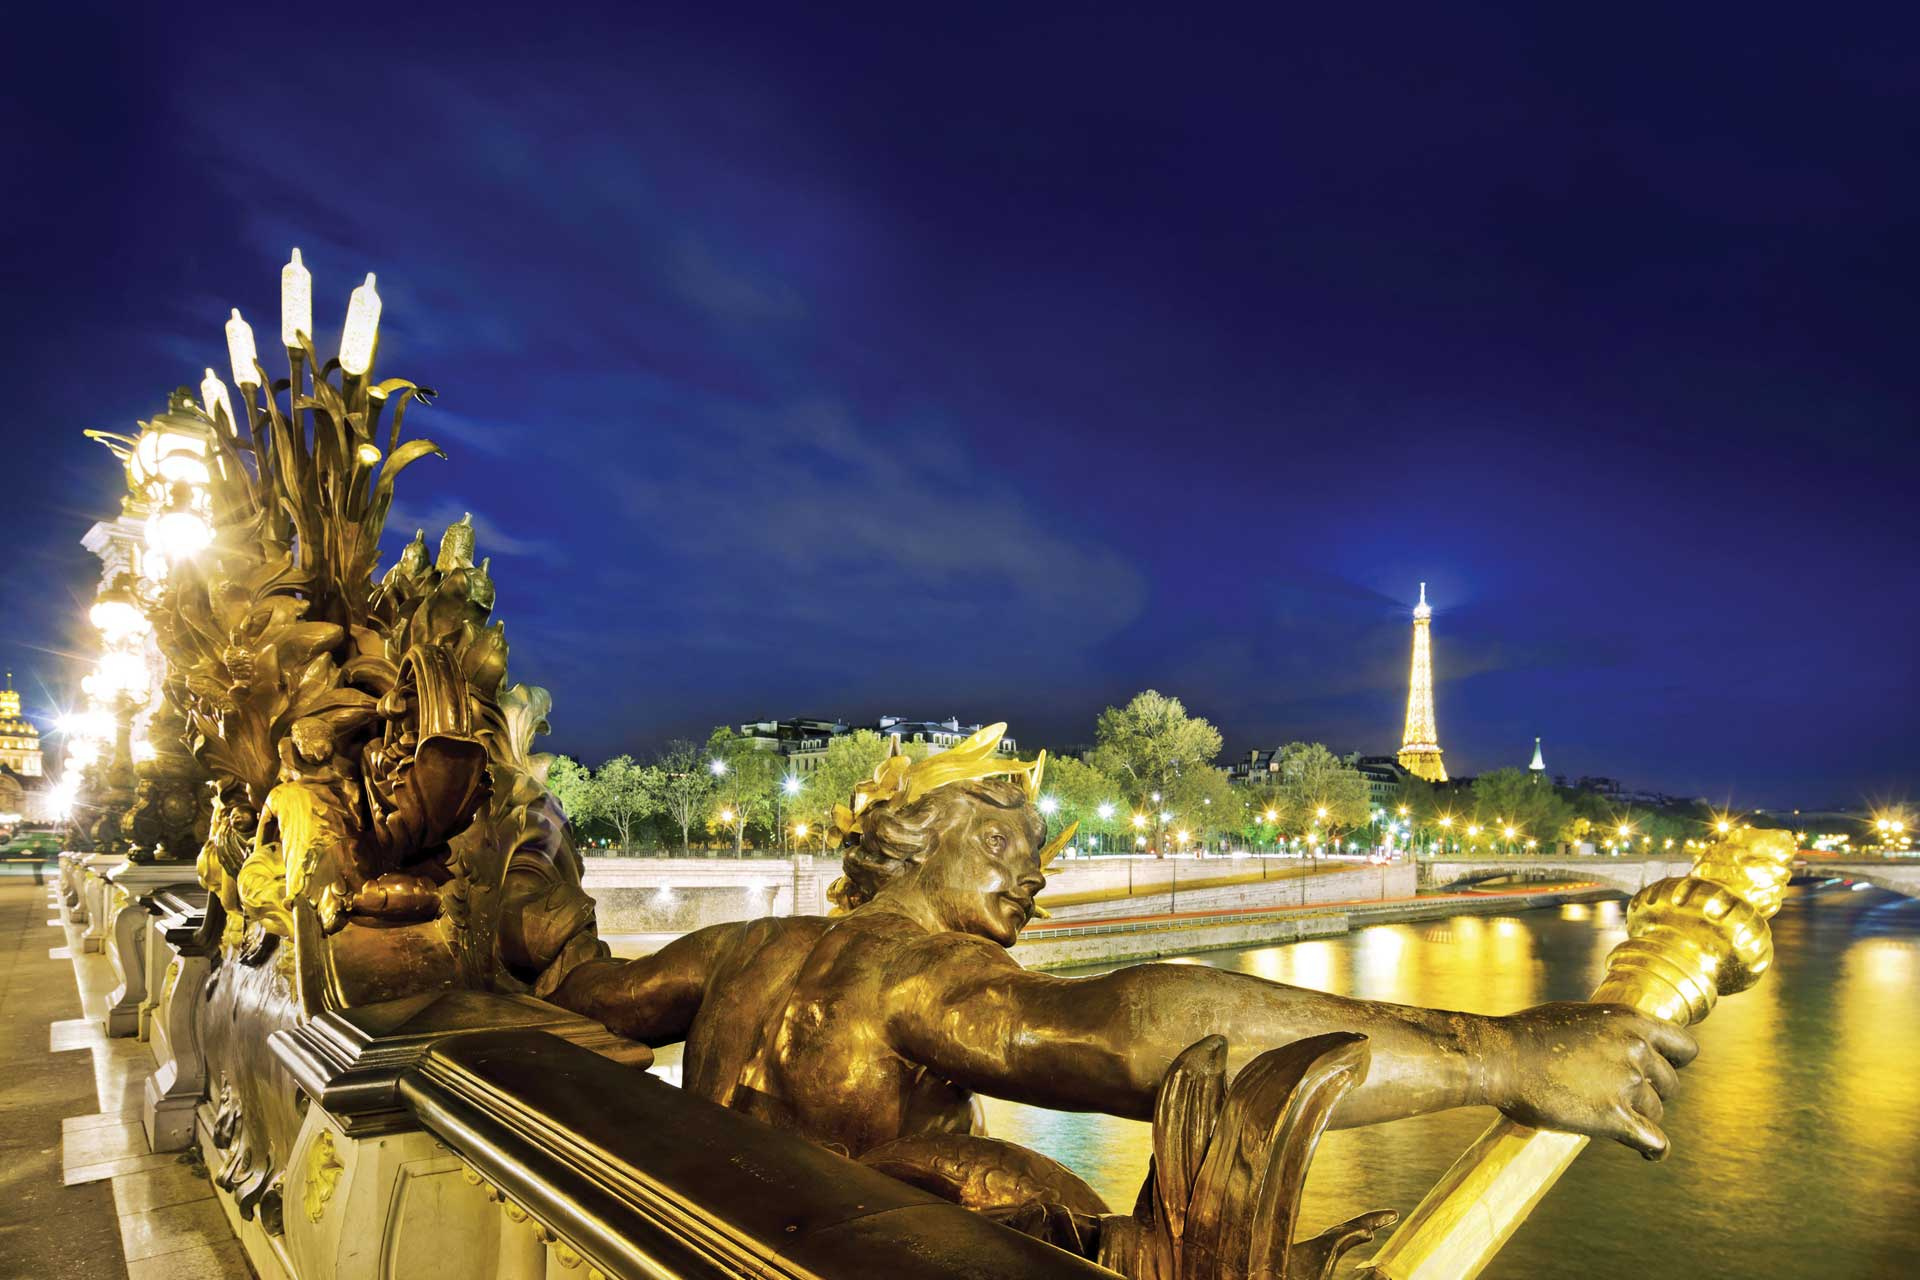 View of the Eiffel Tower over the Seine River